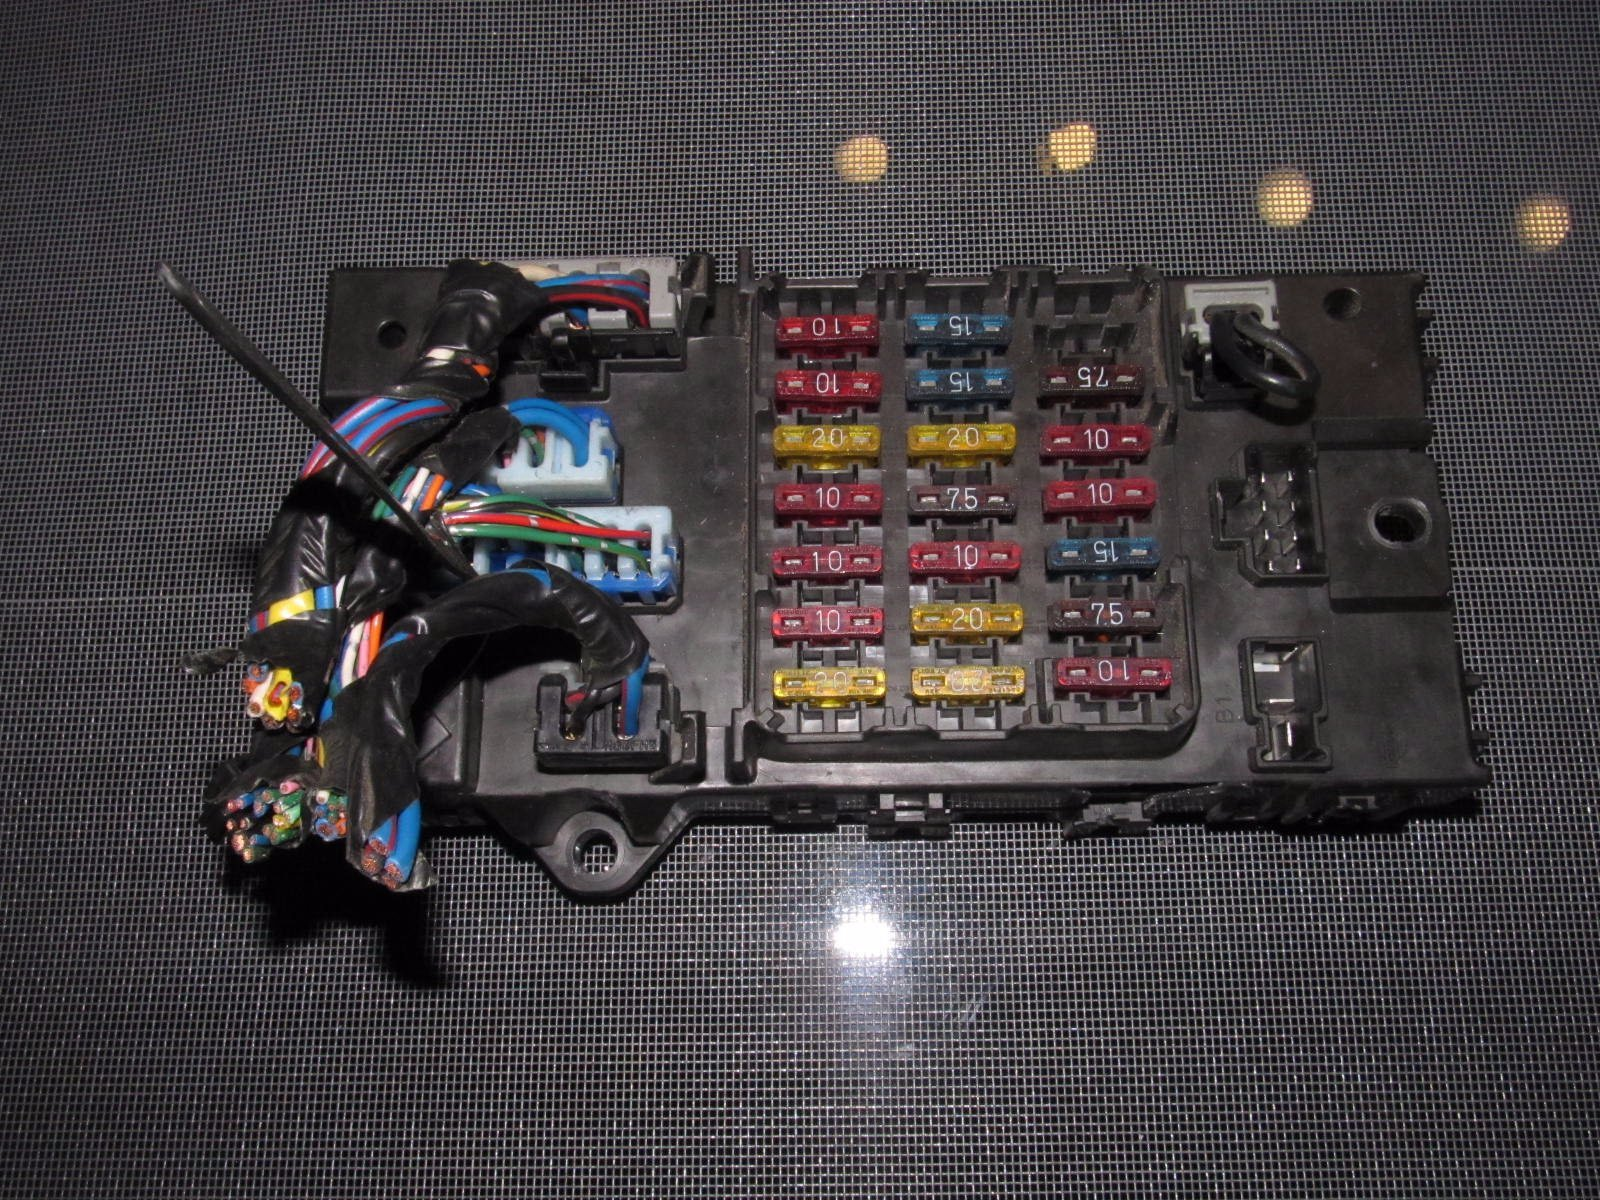 nissan 300zx fuse box for example electrical wiring diagram u2022 rh huntervalleyhotels co 1986 Nissan 300ZX Carpet 1986 Nissan 300ZX Interior